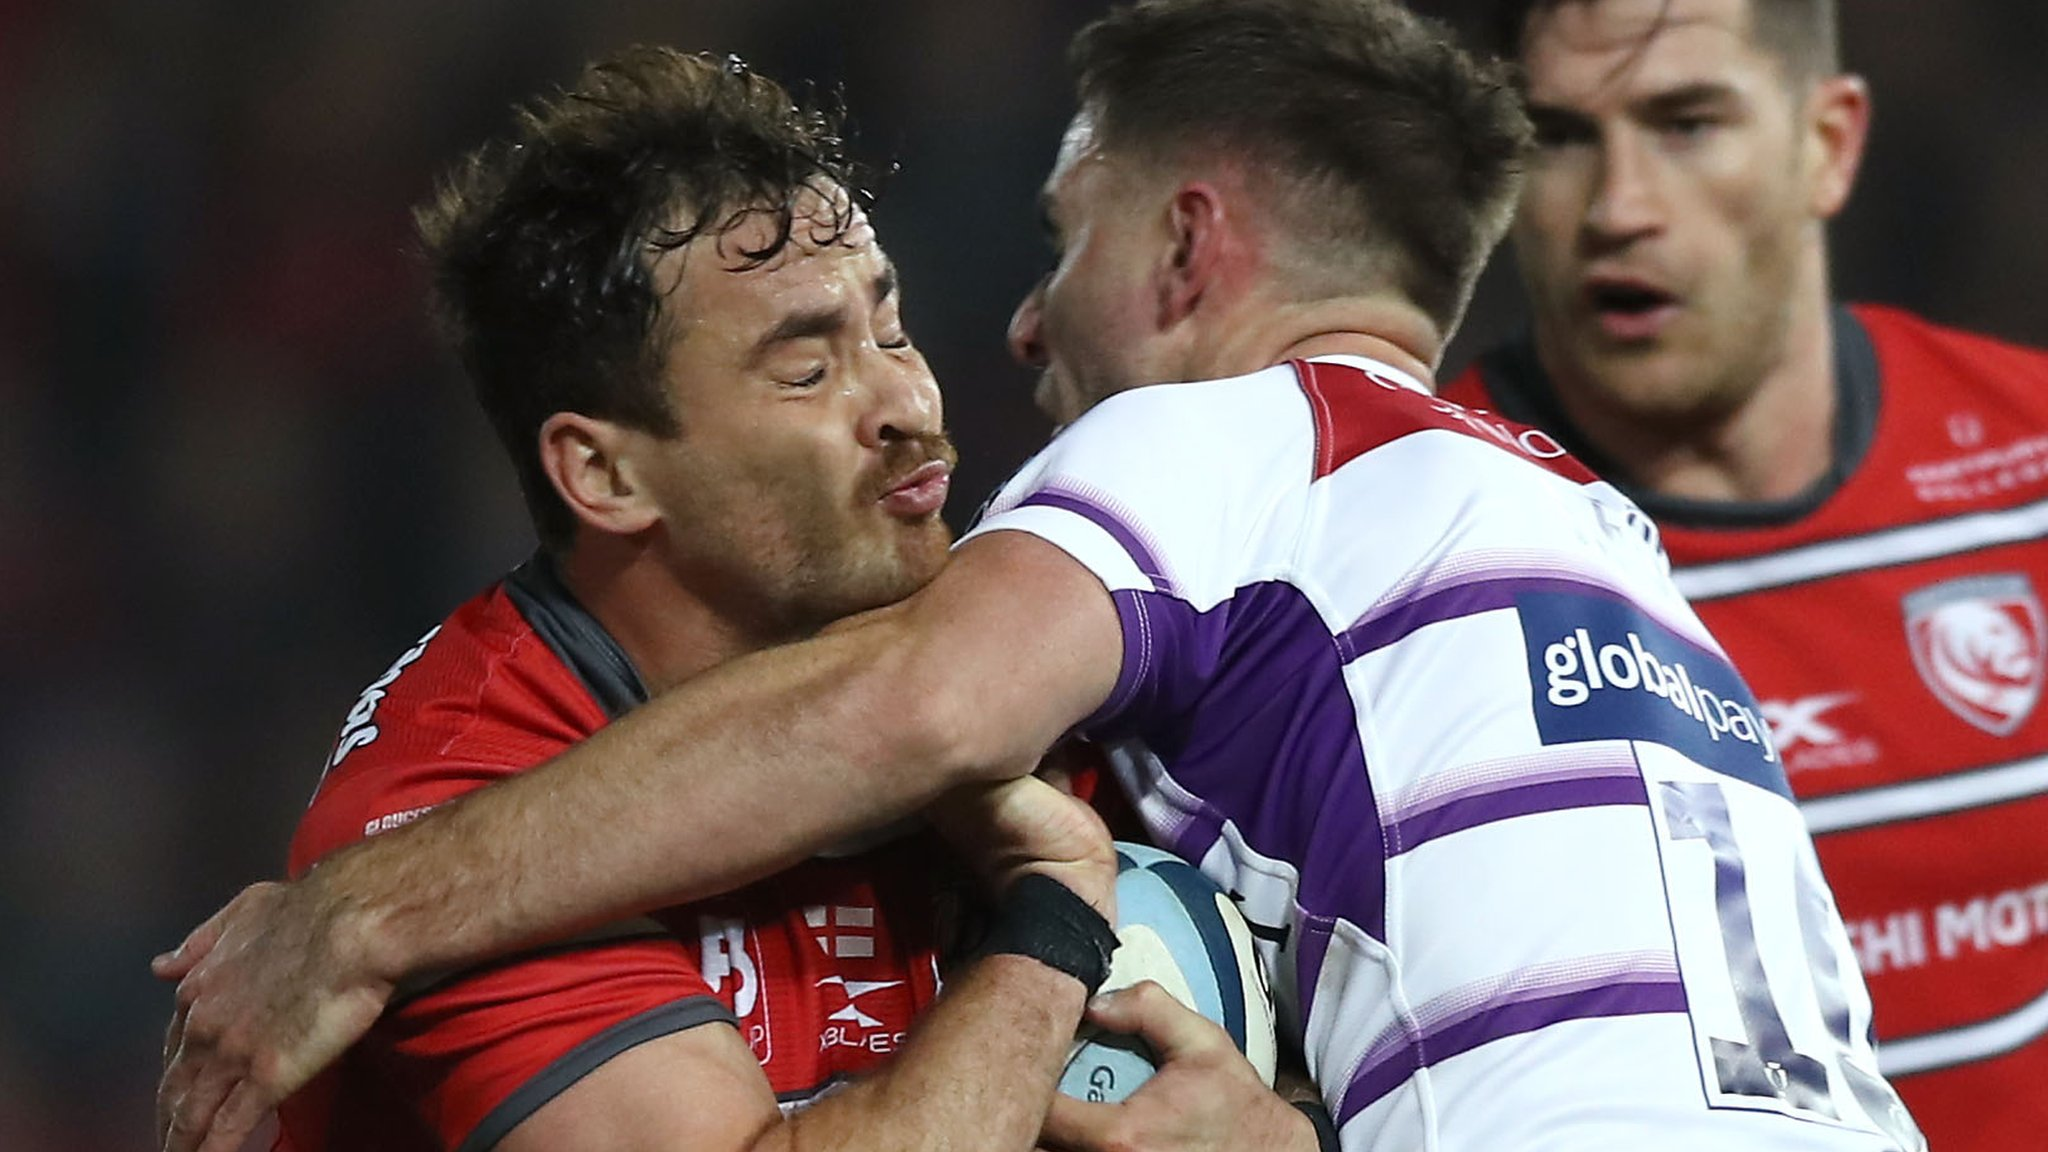 Gloucester 36-13 Leicester Tigers: Danny Cipriani shines on return from suspension